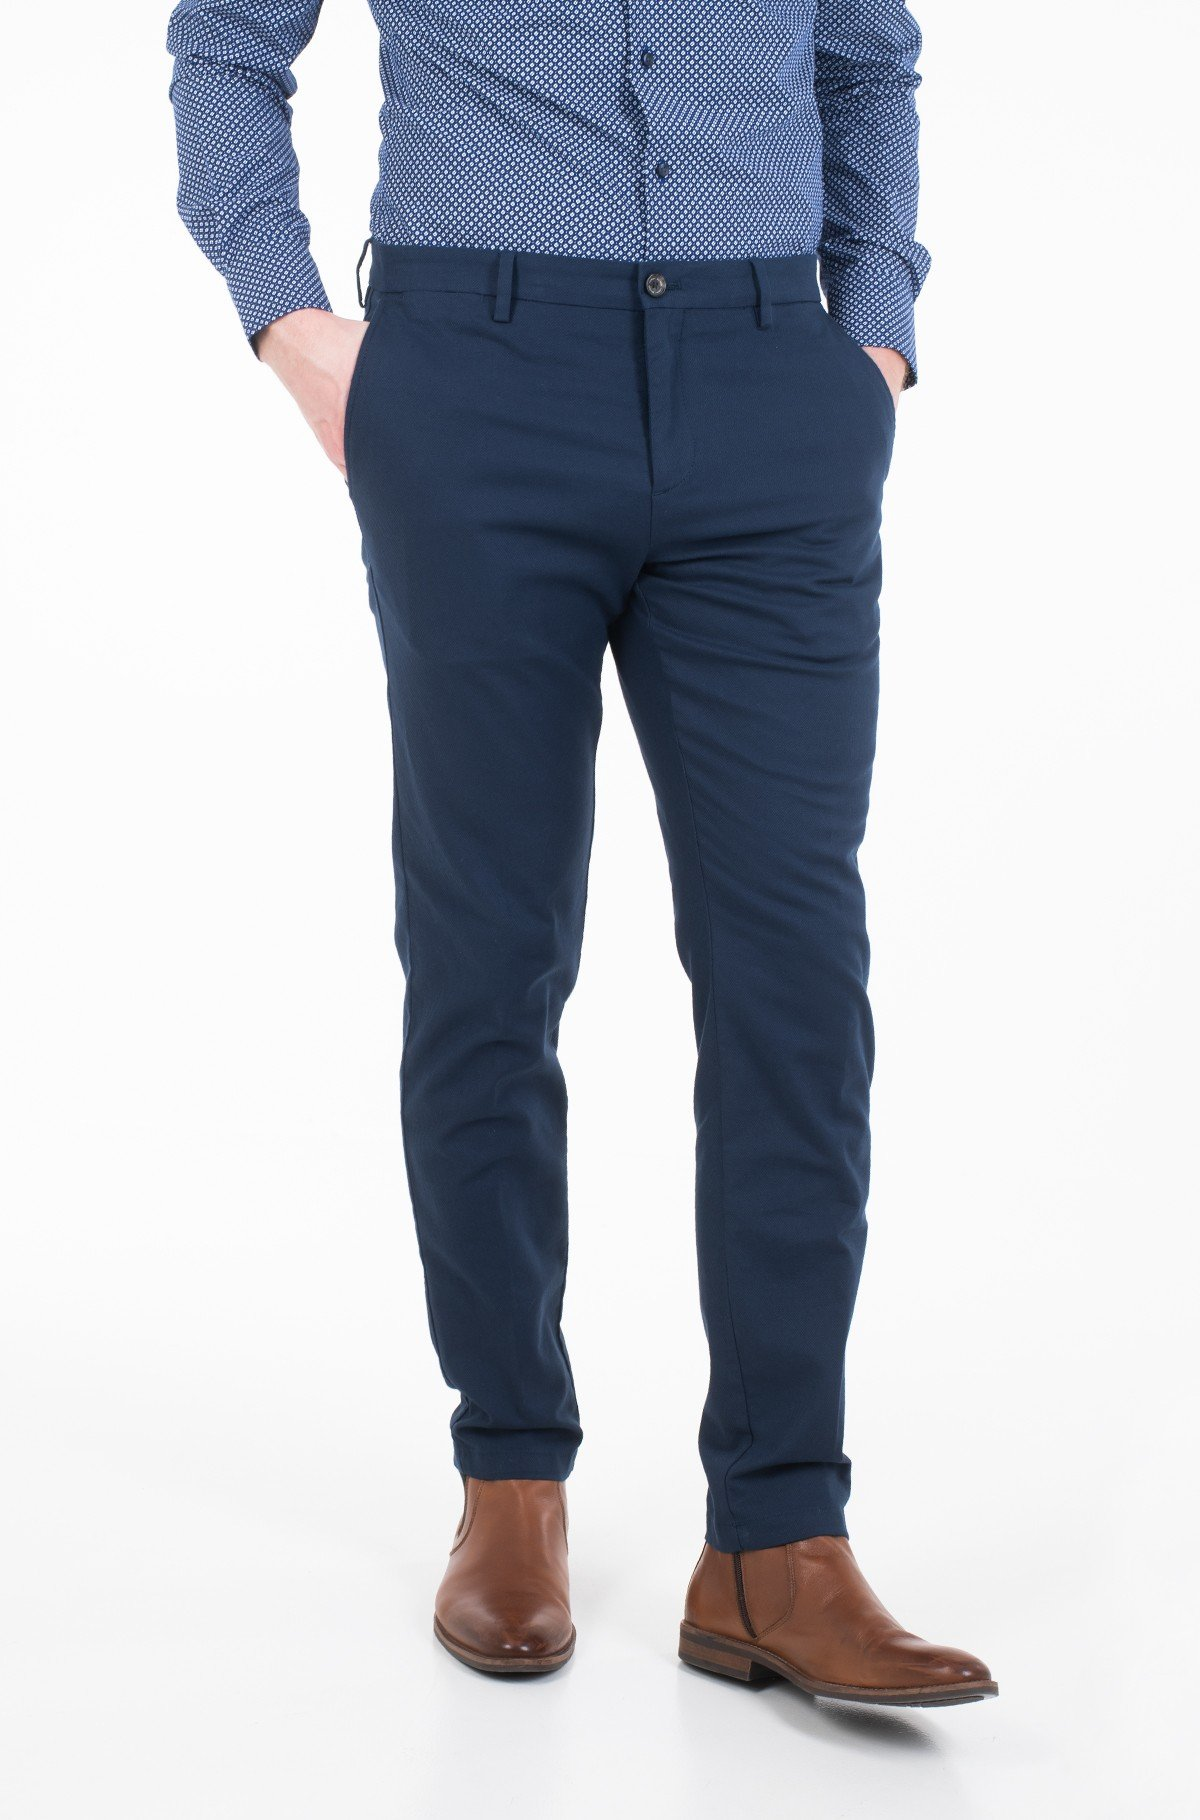 Riidest püksid SLIM FIT STRUCTURED FLEX PANT-full-2